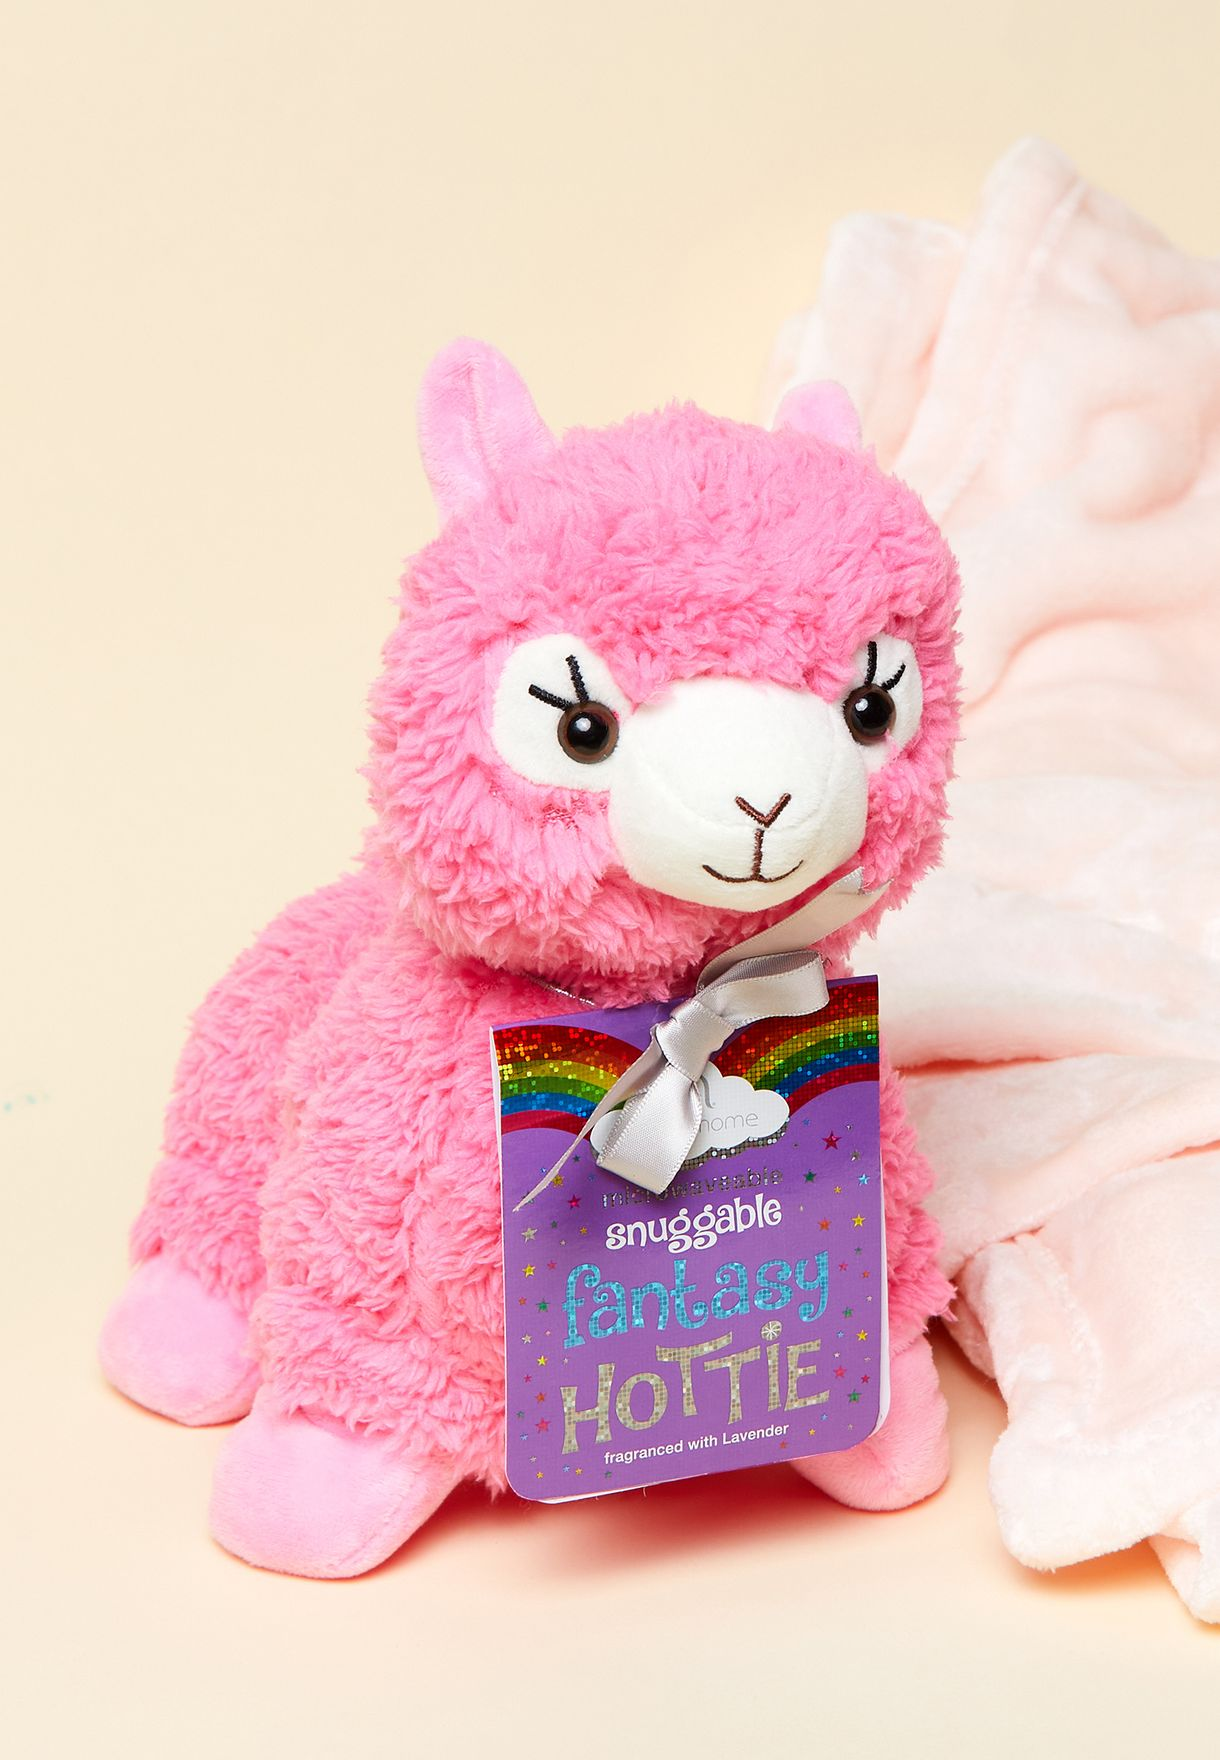 Microwaveable Cozy Llama Hottie